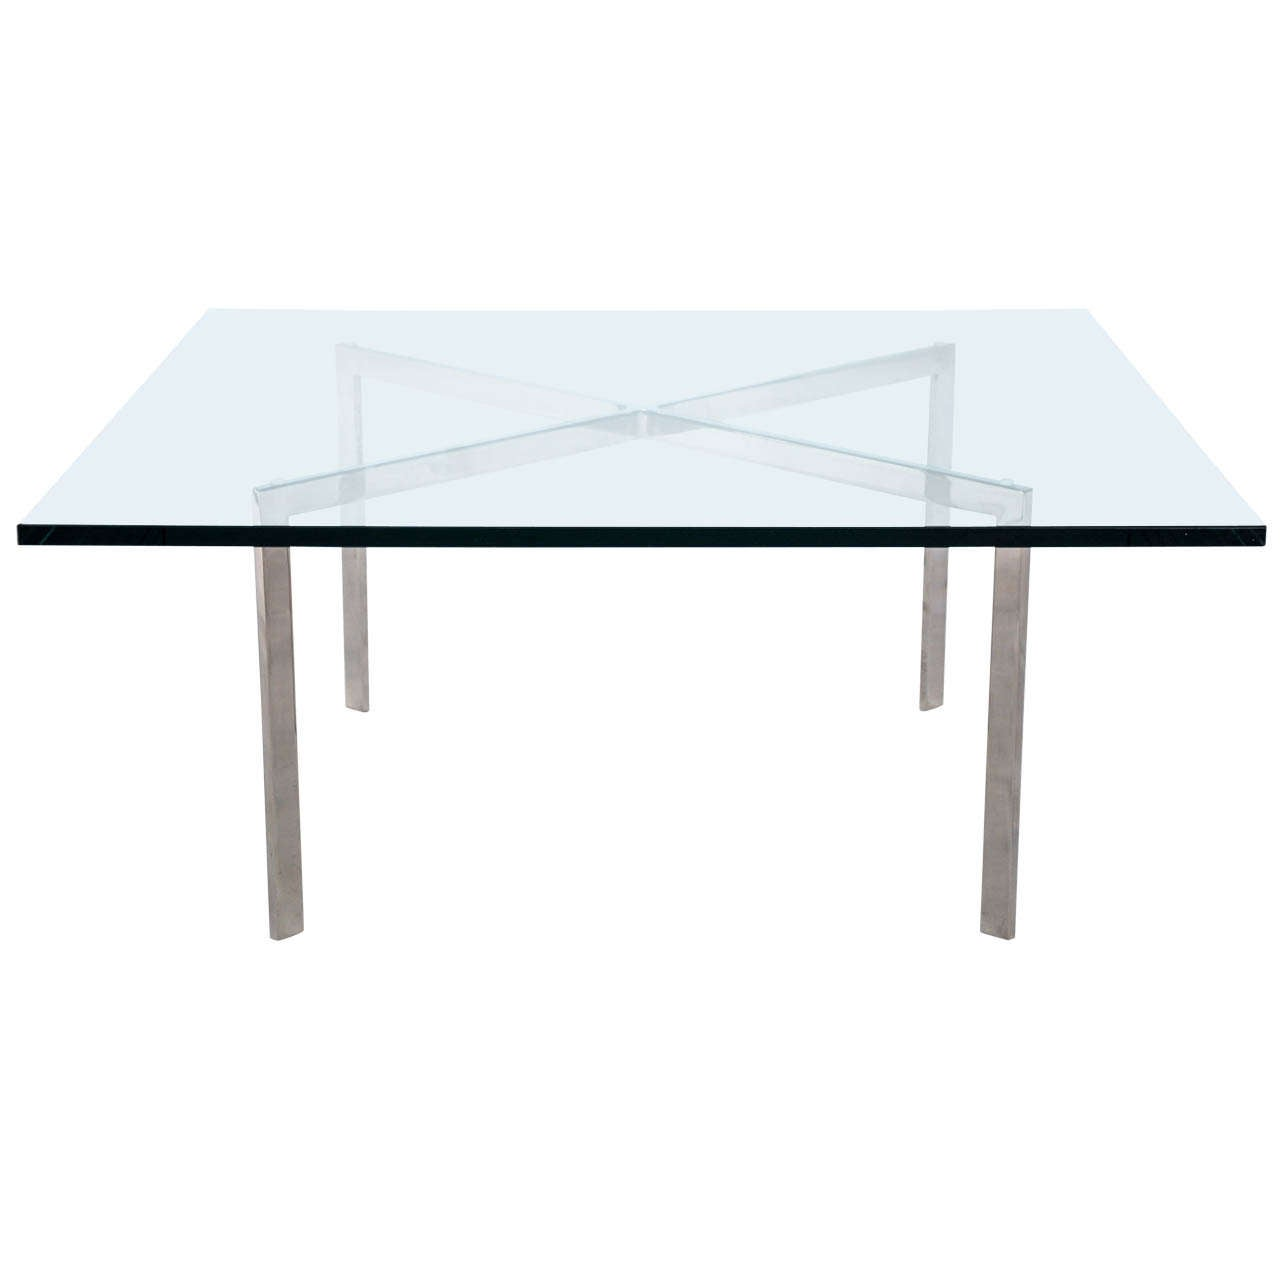 Delicieux Ludwig Mies Van Der Rohe Barcelona Table For Sale